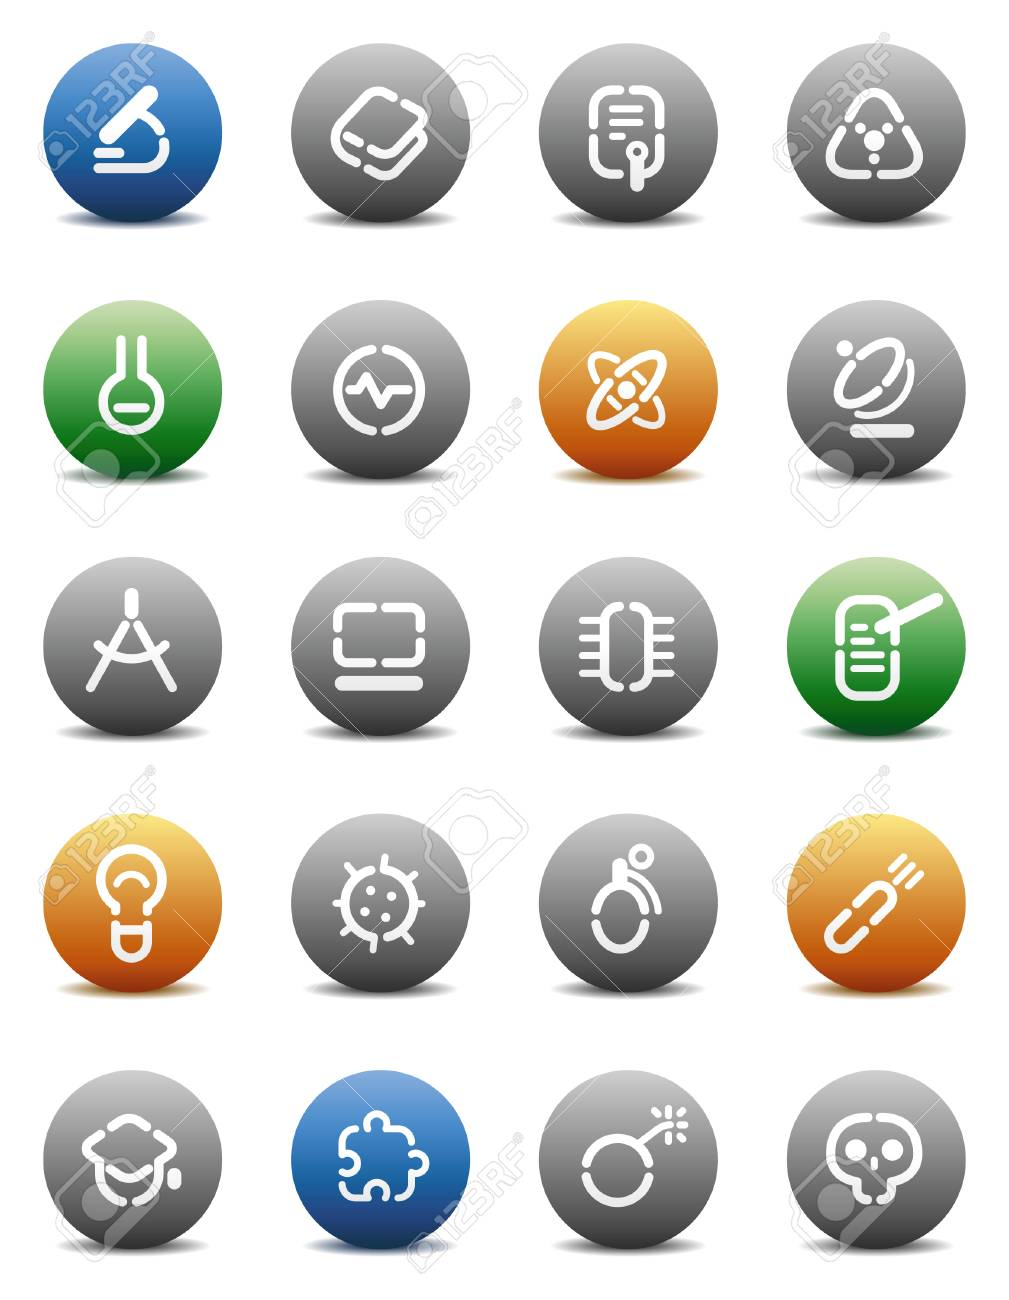 Buttons for science. Icons for websites and interface elements. Vector illustration. Stock Vector - 5464274